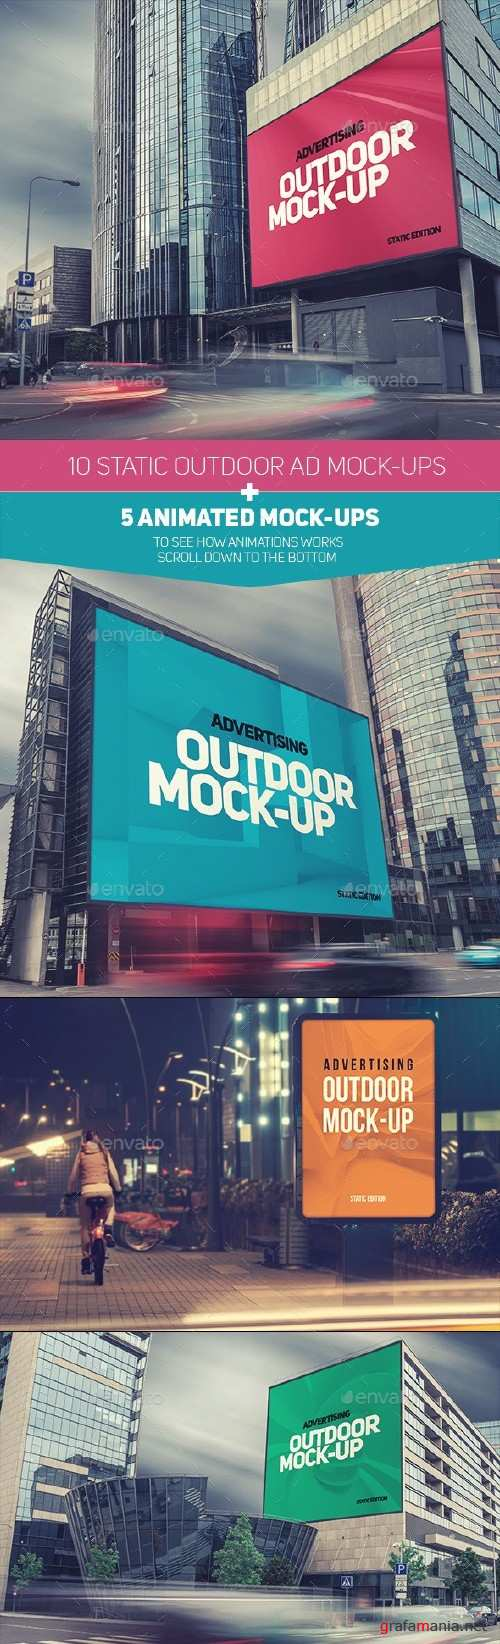 Animated Outdoor Advertising Mockup - 9351792